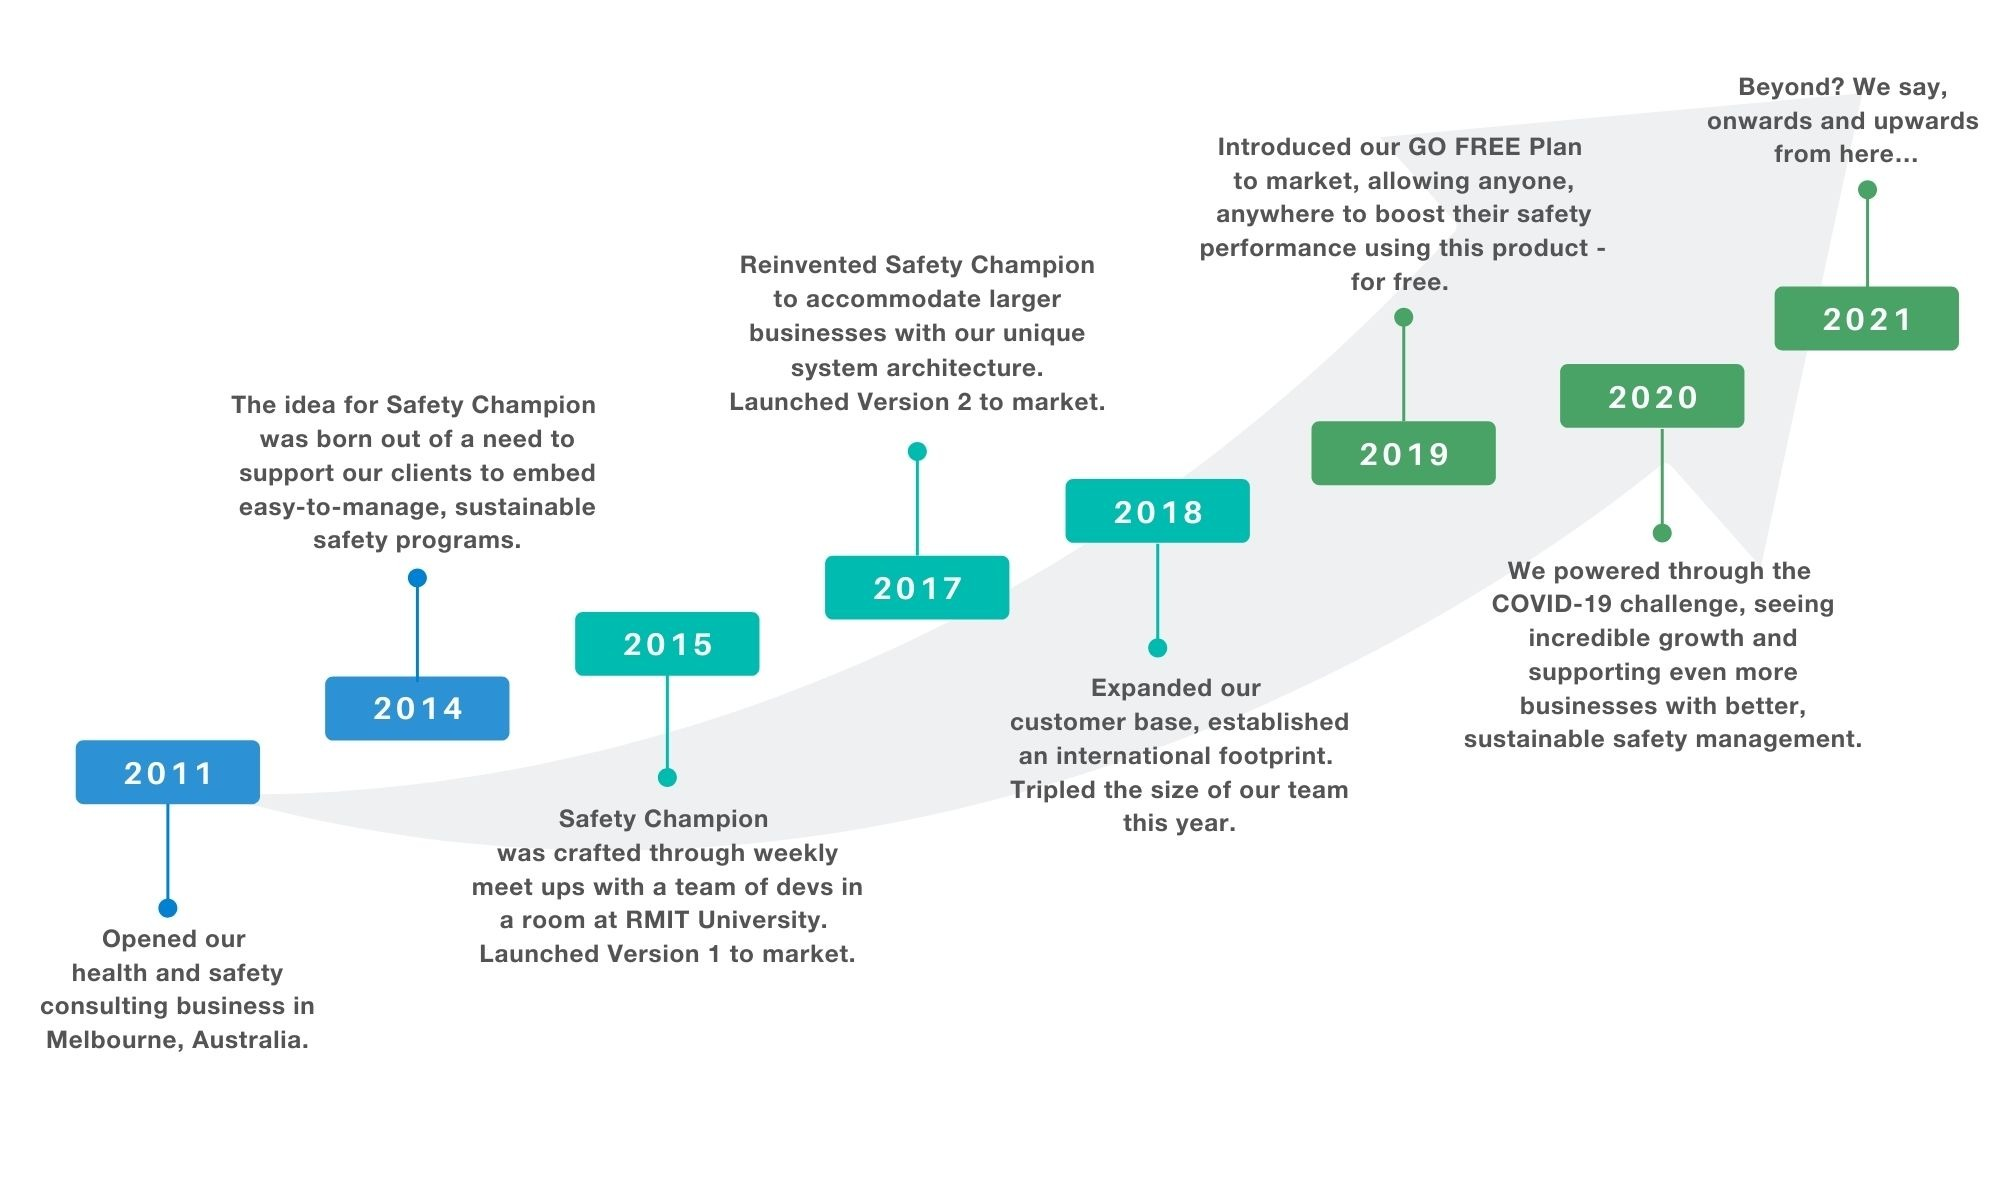 2021-about-us-pge-timeline